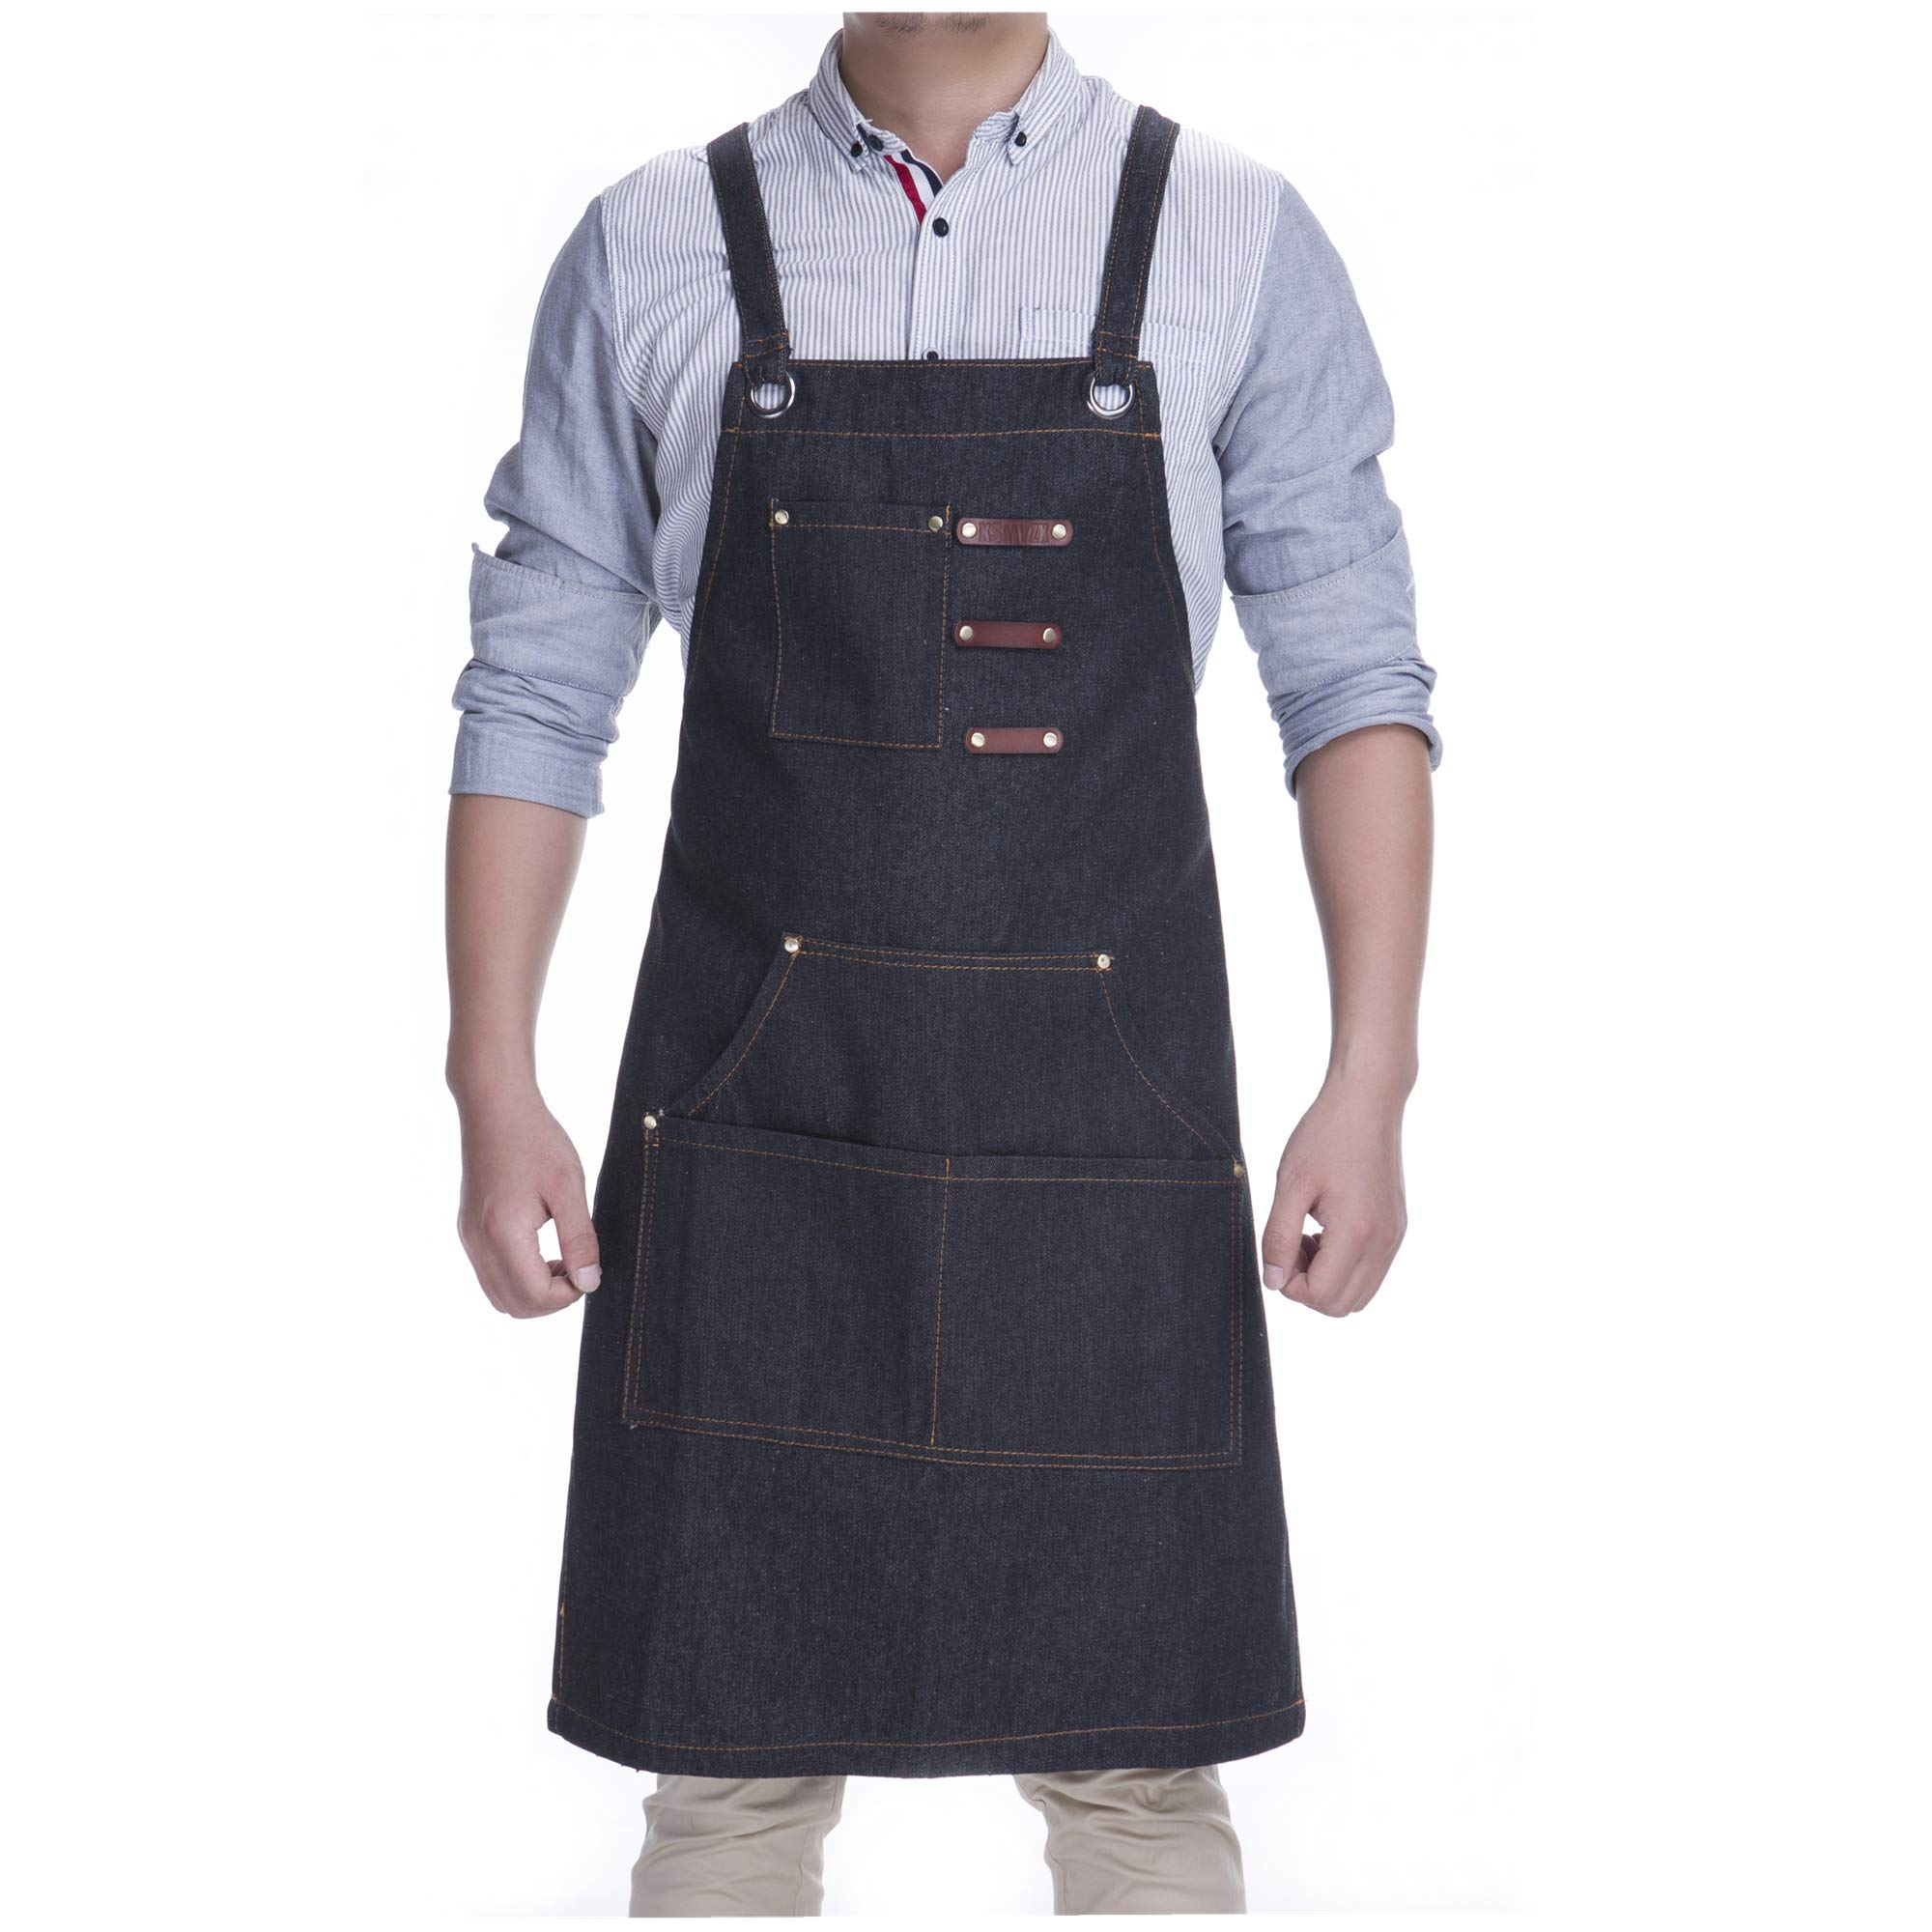 KSMYZX Durable Goods - Heavy Duty Multi-Pocket Black, Gray, Black Denim Multi-Purpose Apron, S-XXL Full-Size Cross Strap, Cafe, Restaurant, Barbecue, Workshop, Hairdresser, Woodwork, Safety Large Stor